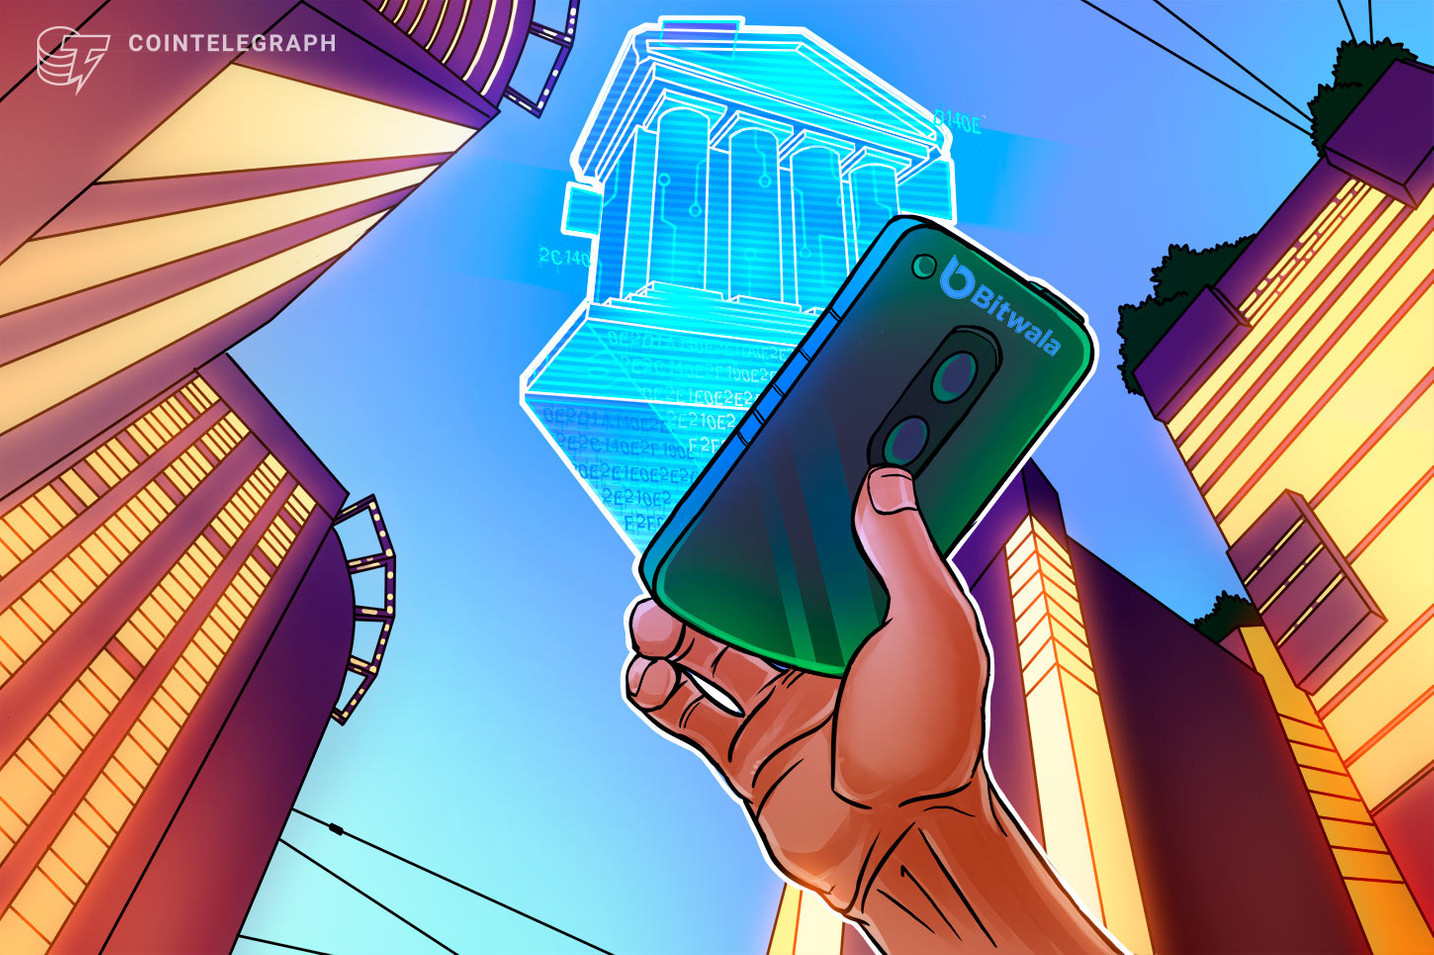 Germany's Bitwala Launches All-In-One Mobile Bitcoin Bank App